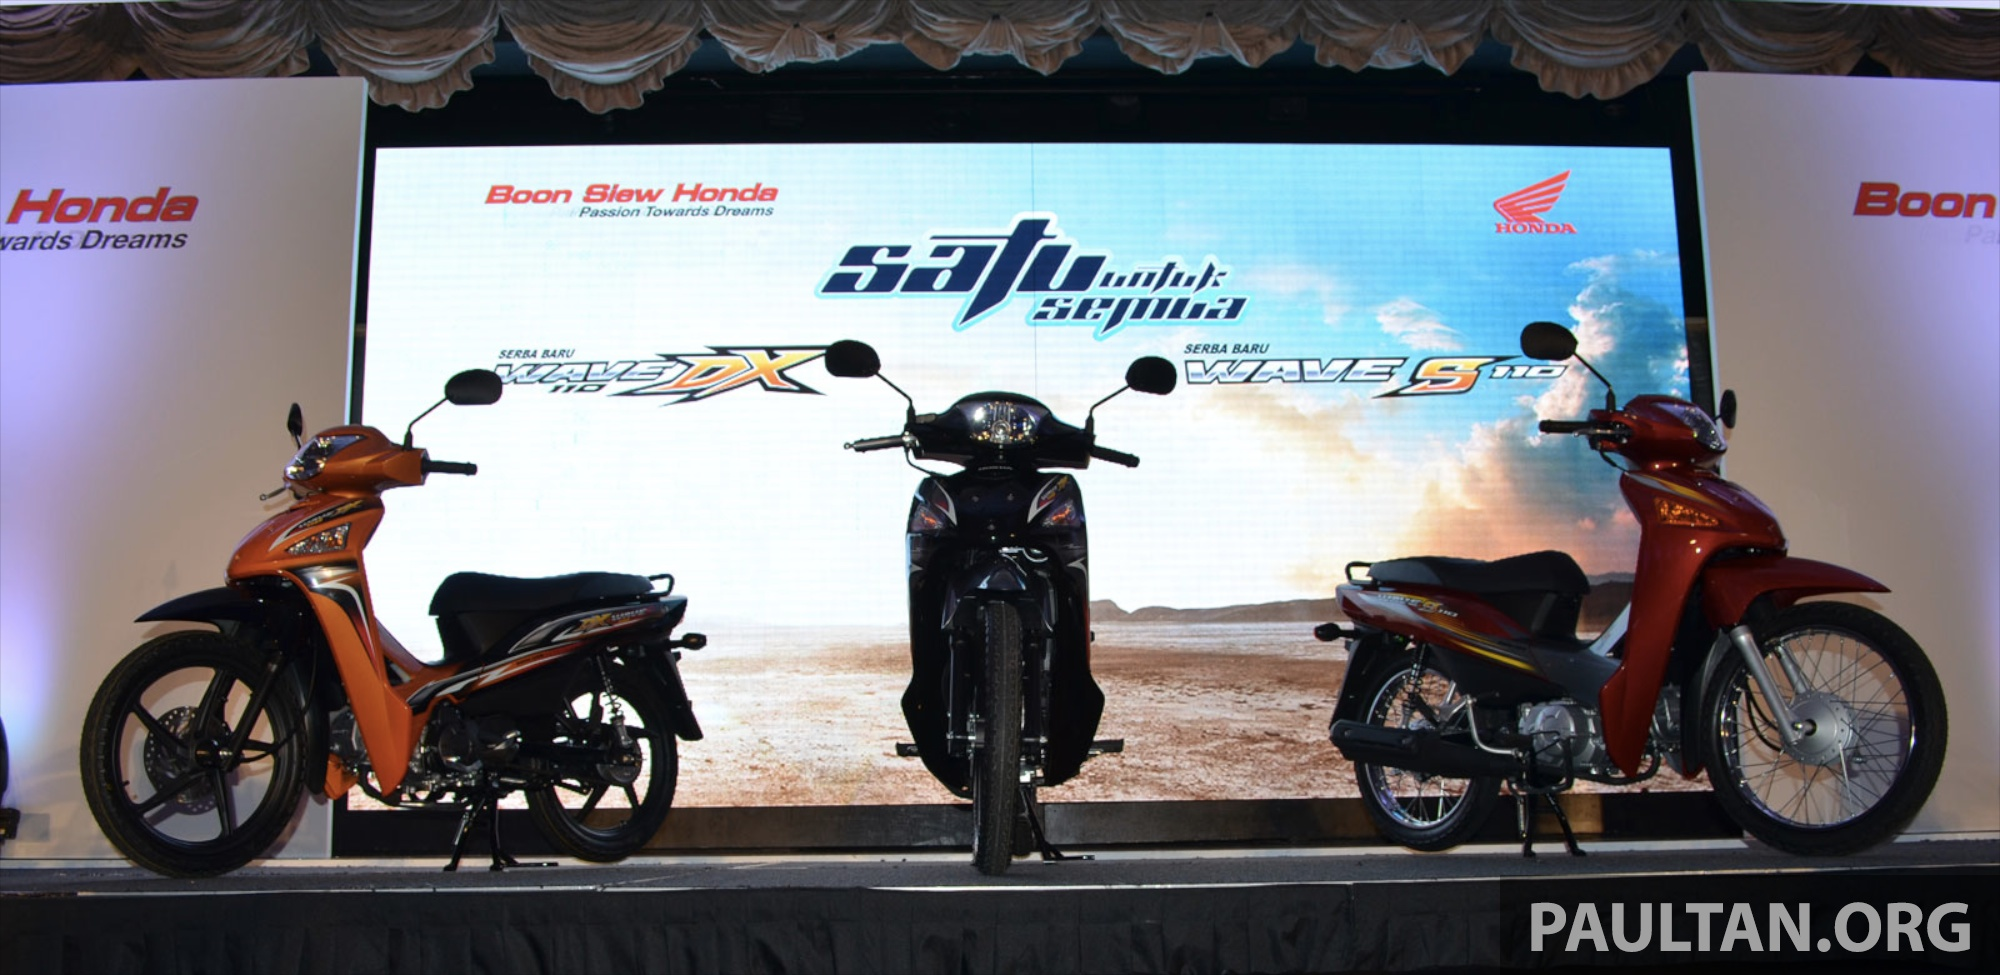 New Honda Wave 110 kapcai launched by Boon Siew Image 176716